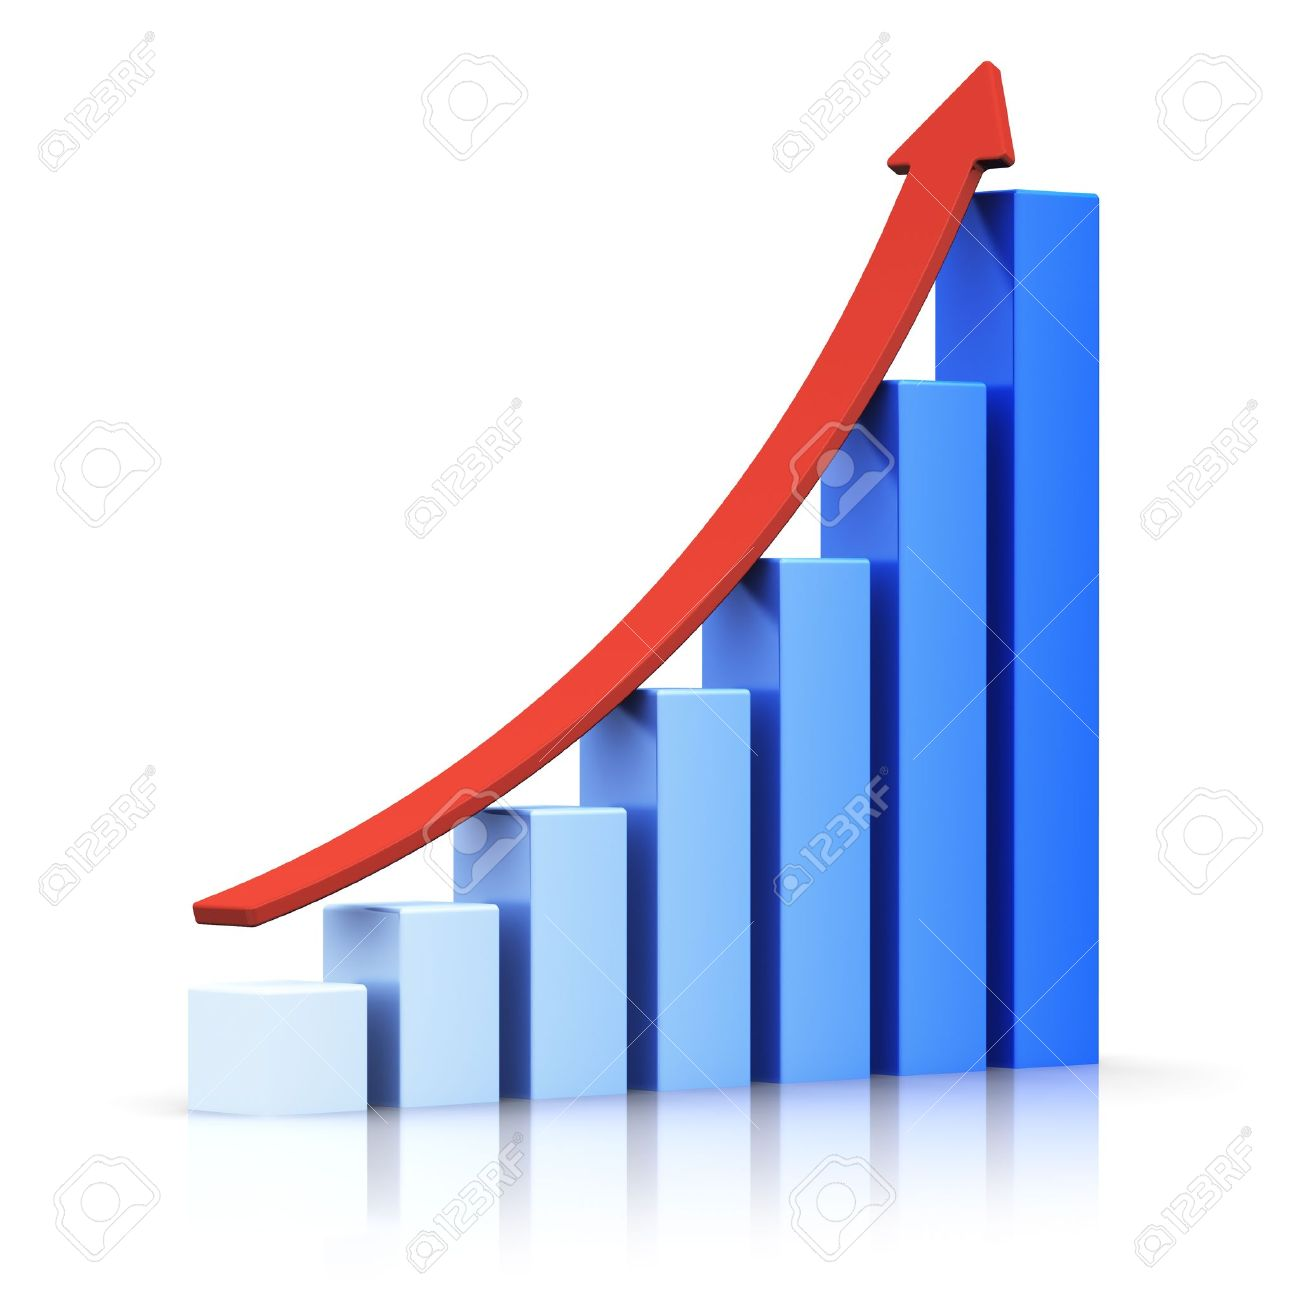 Arrow growth chart craftbnb growth chart stock photos images 220445 royalty free growth nvjuhfo Gallery